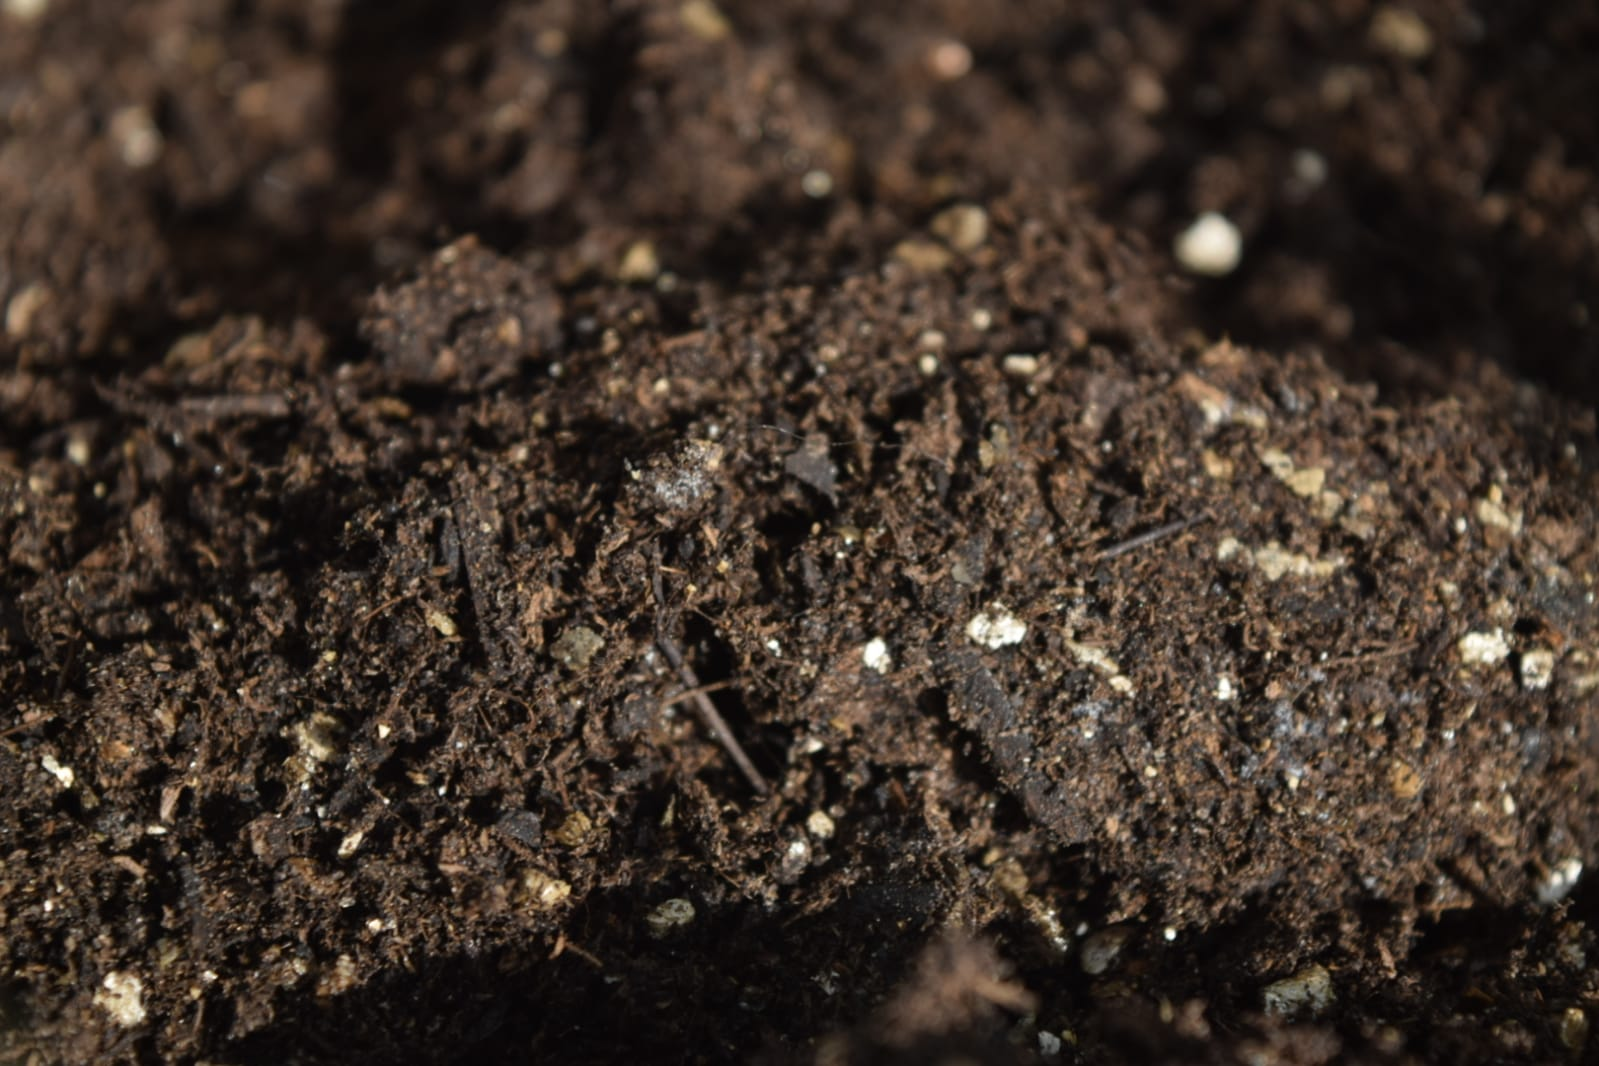 The memories retained by soil contain countless records, including a history of human encounters with the land. - Image Credit: C. Verhagen via Universal-Sci ( CC BY 2.0 )